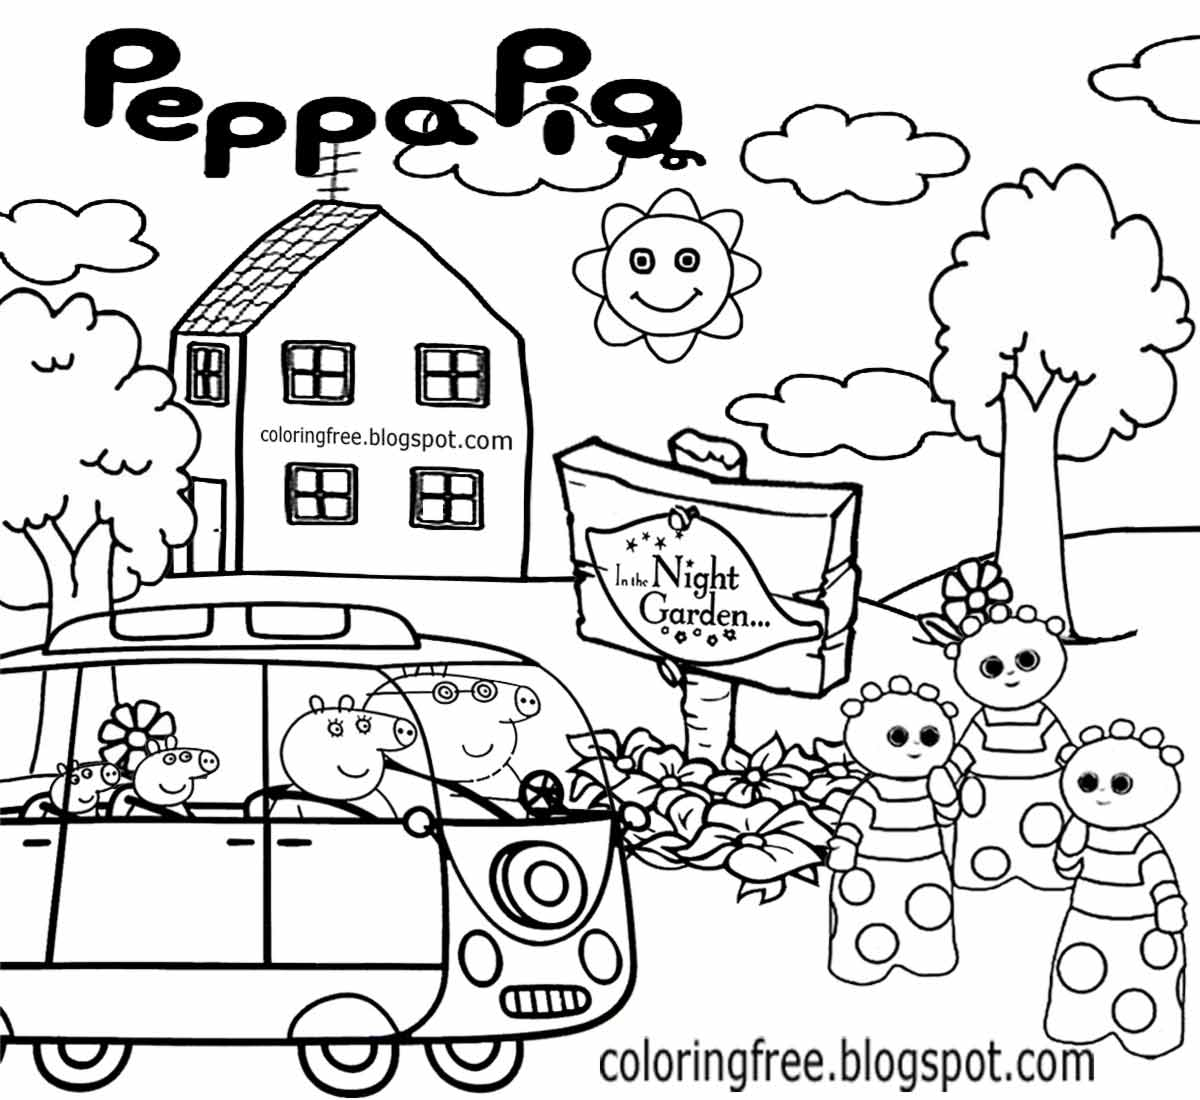 Free Coloring Pages Printable Pictures To Color Kids Drawing Ideas February